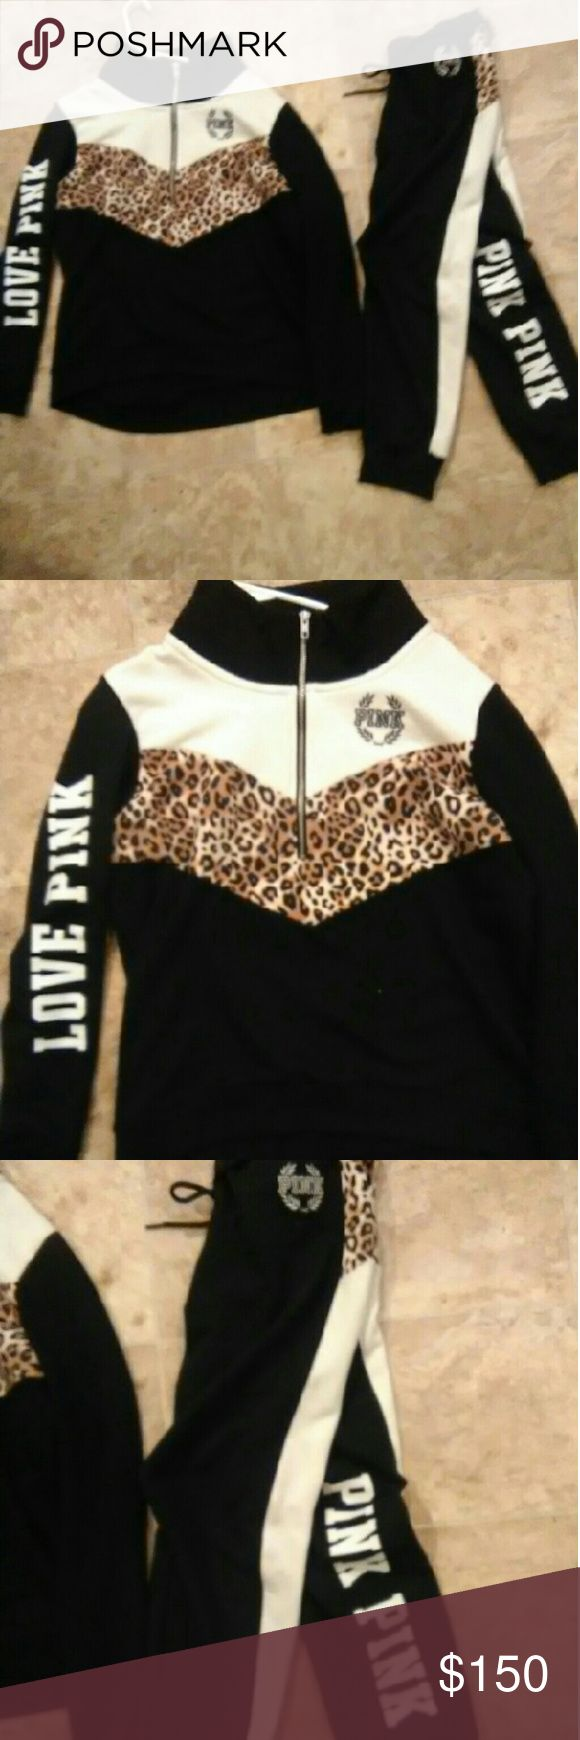 Victoria secret PINK cheetah outfit WILL ONLY TRADE FOR ANOTHER OUTFIT OR COUPLE HOODIES/CREWS/SWEATERS Size medium Still has the tags PINK Victoria's Secret Sweaters